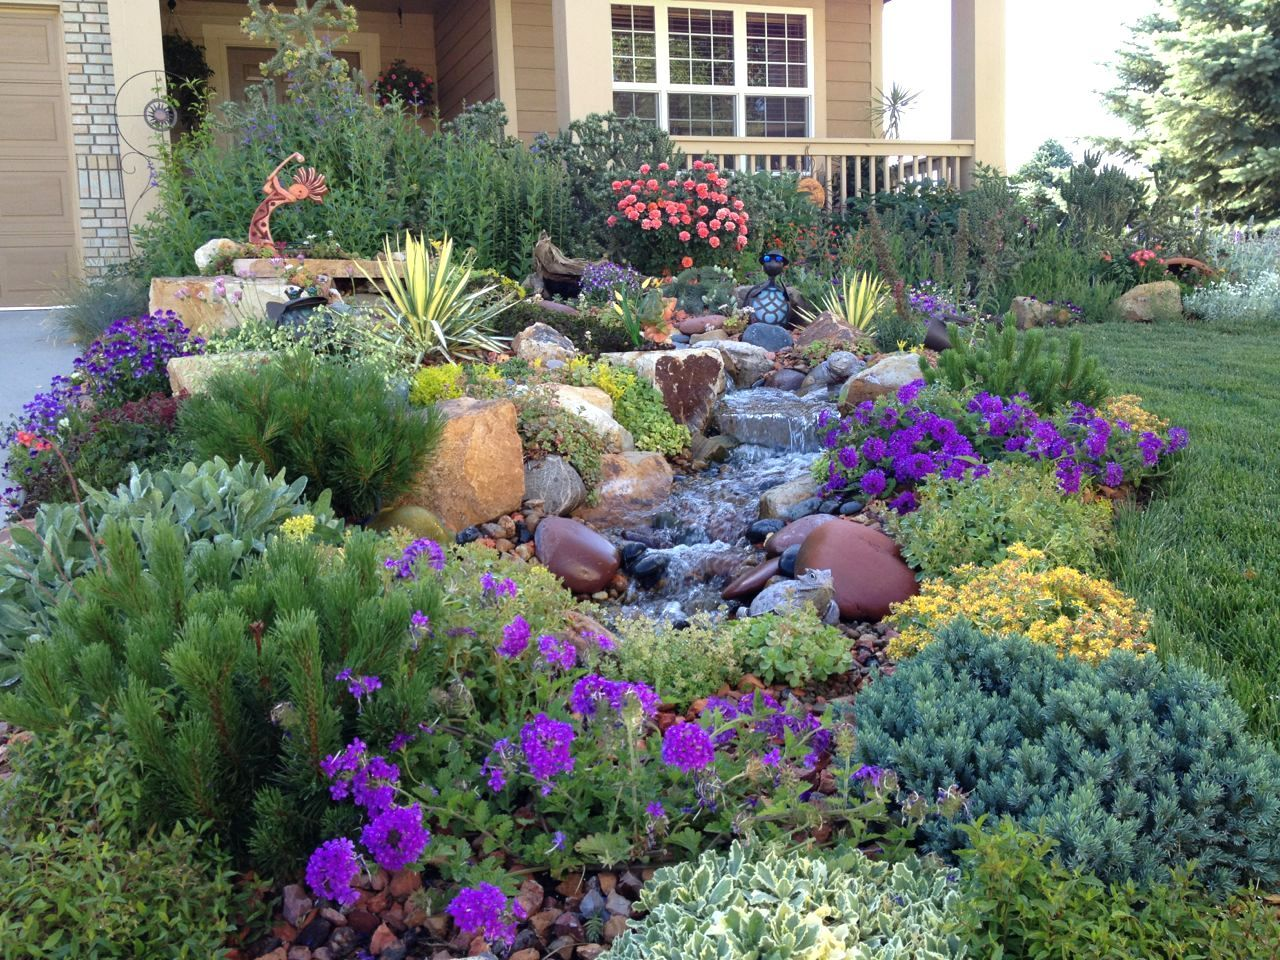 Low Maintenance Landscaping Ideas For The Midwest Front Yard Design Small Xeriscape